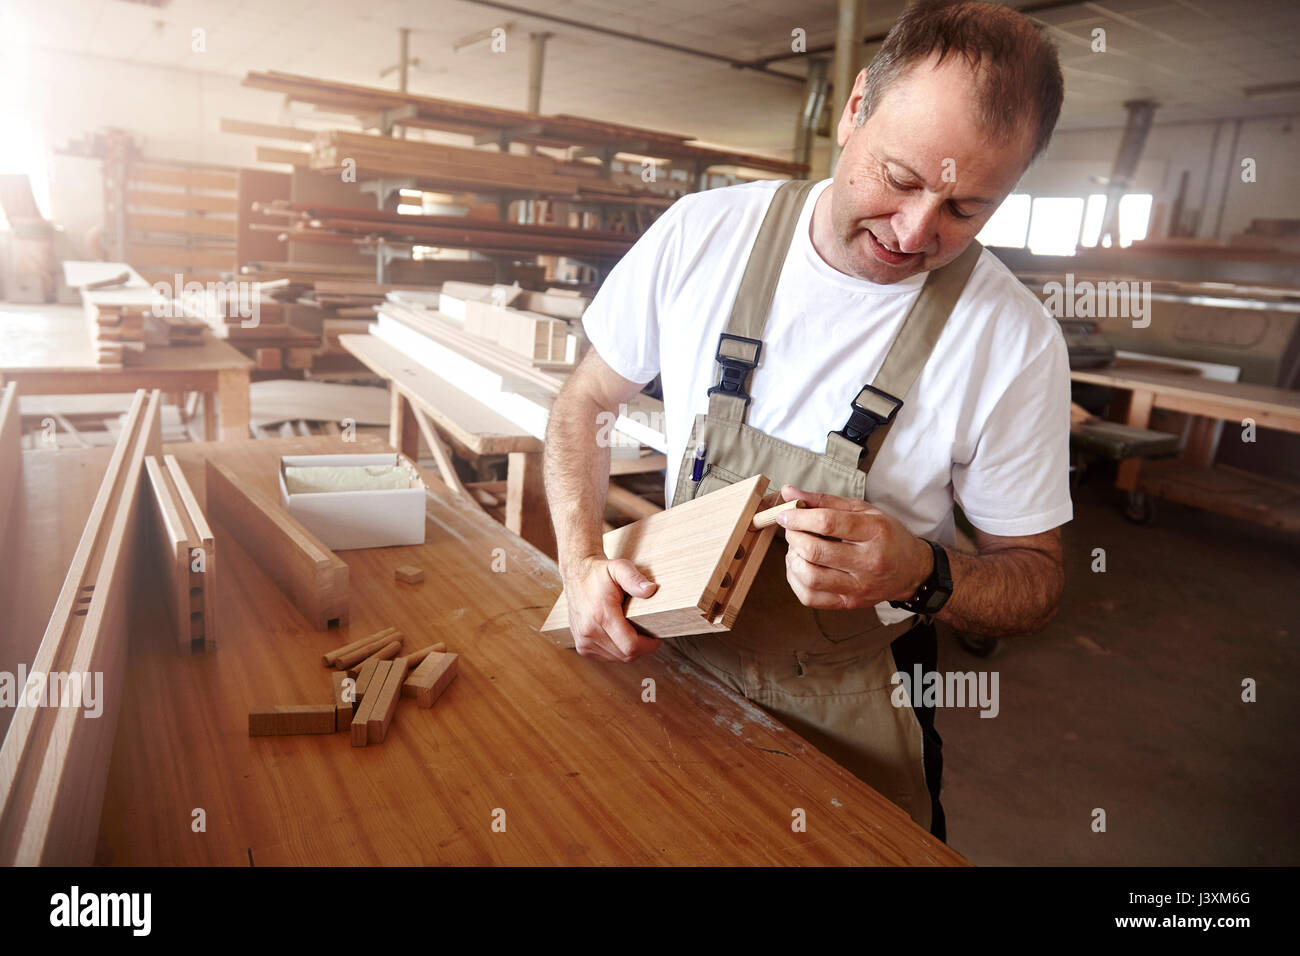 Male carpenter inserting wooden dowel at workbench - Stock Image